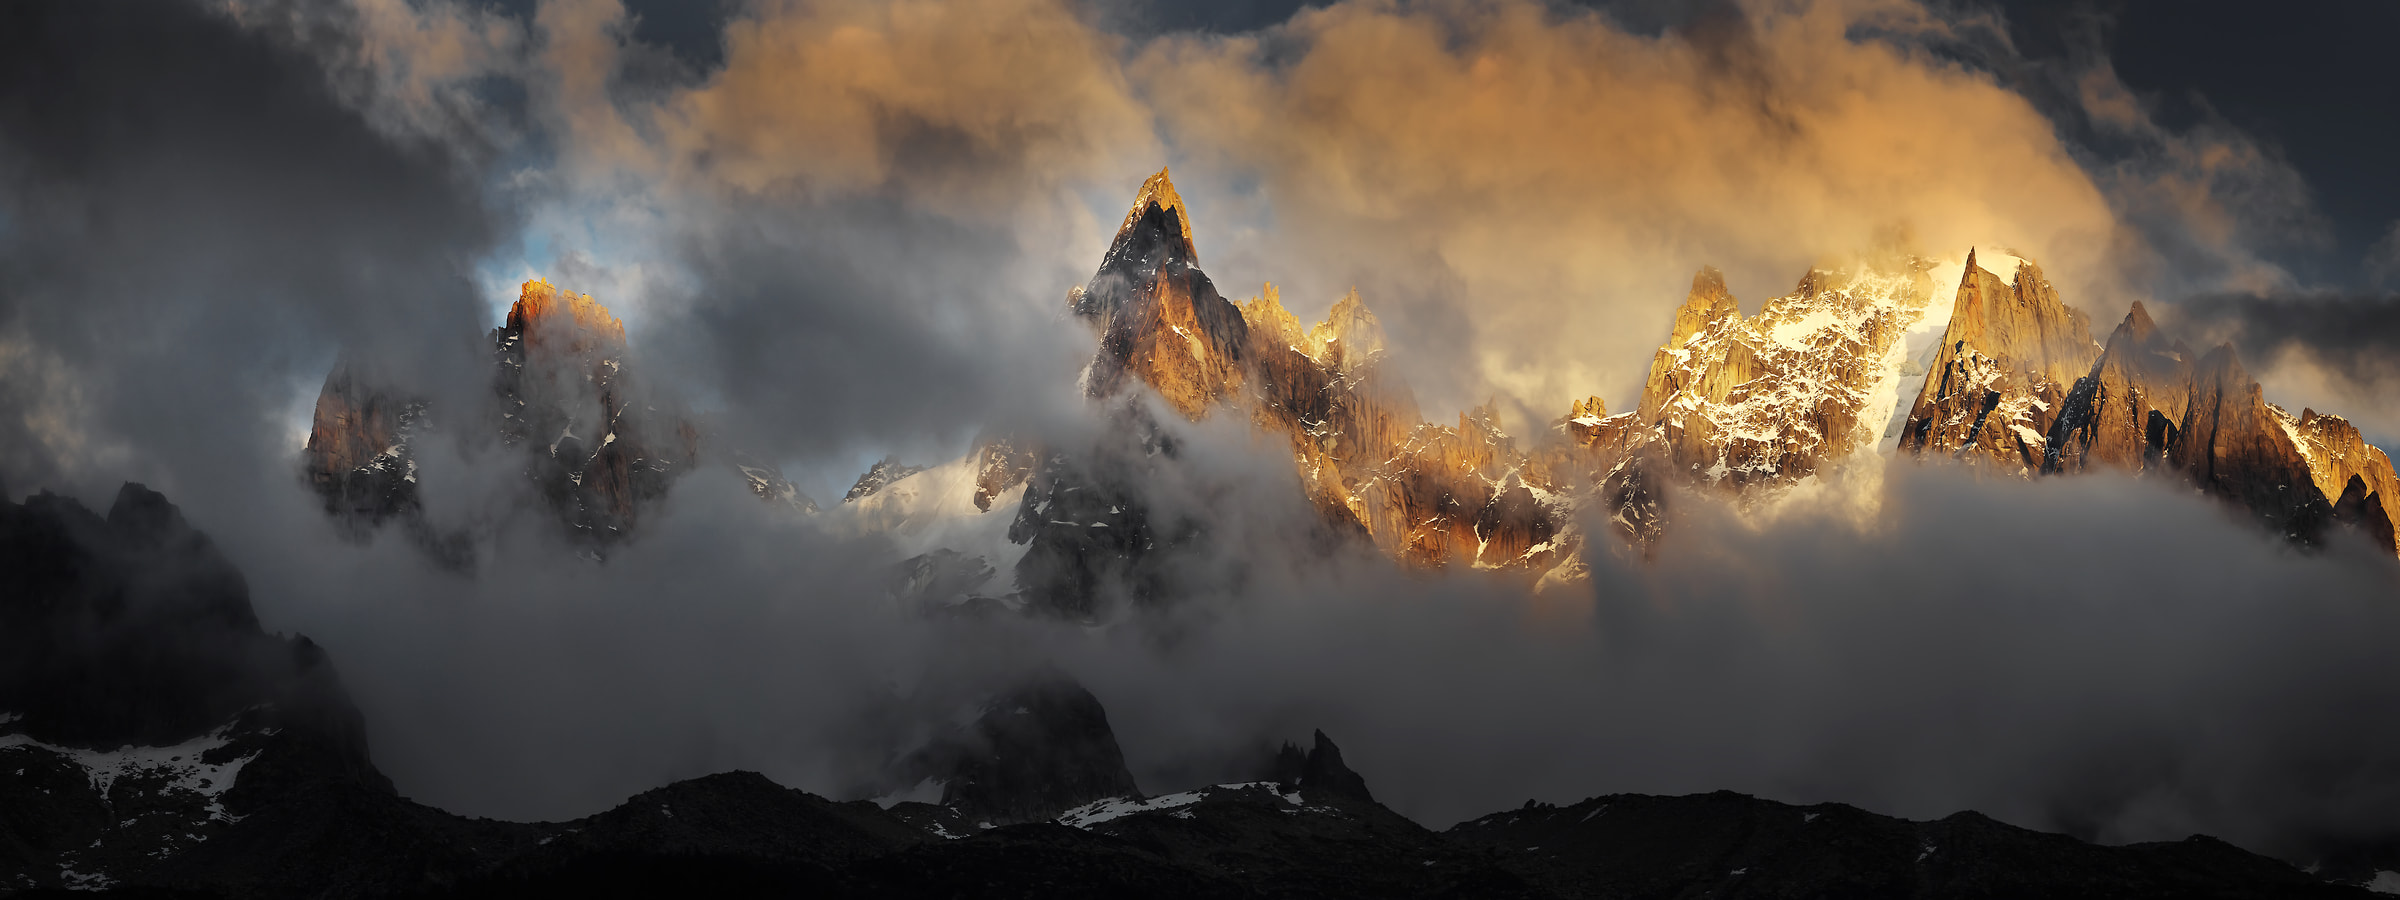 209 megapixels! A very high resolution, large-format VAST photo of stunning mountains at sunset with clouds and fog; fine art landscape print created by Alexandre Deschaumes in Chamonix, France